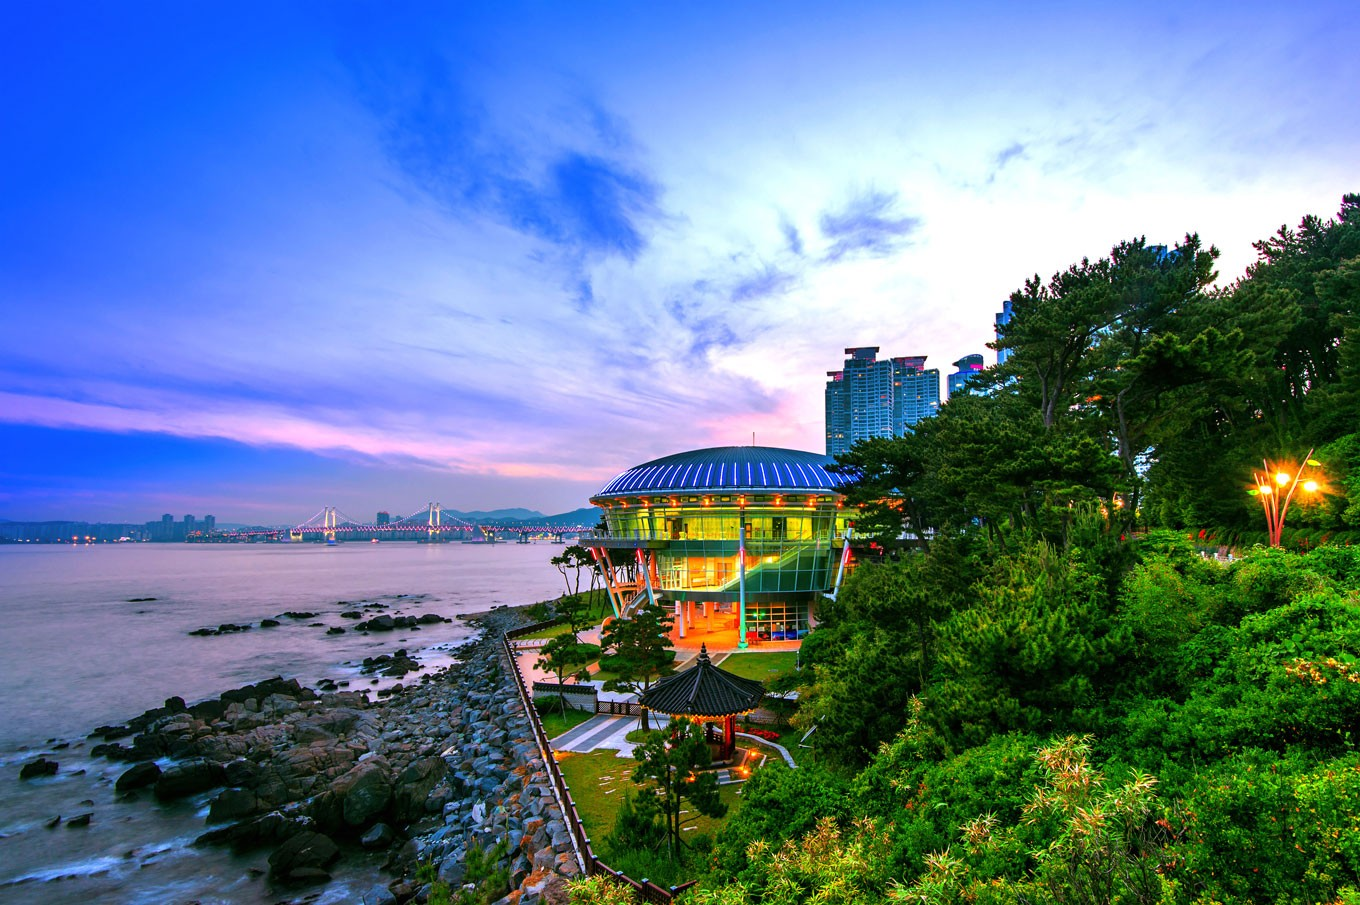 Must-see attractions in Busan alongside film fest